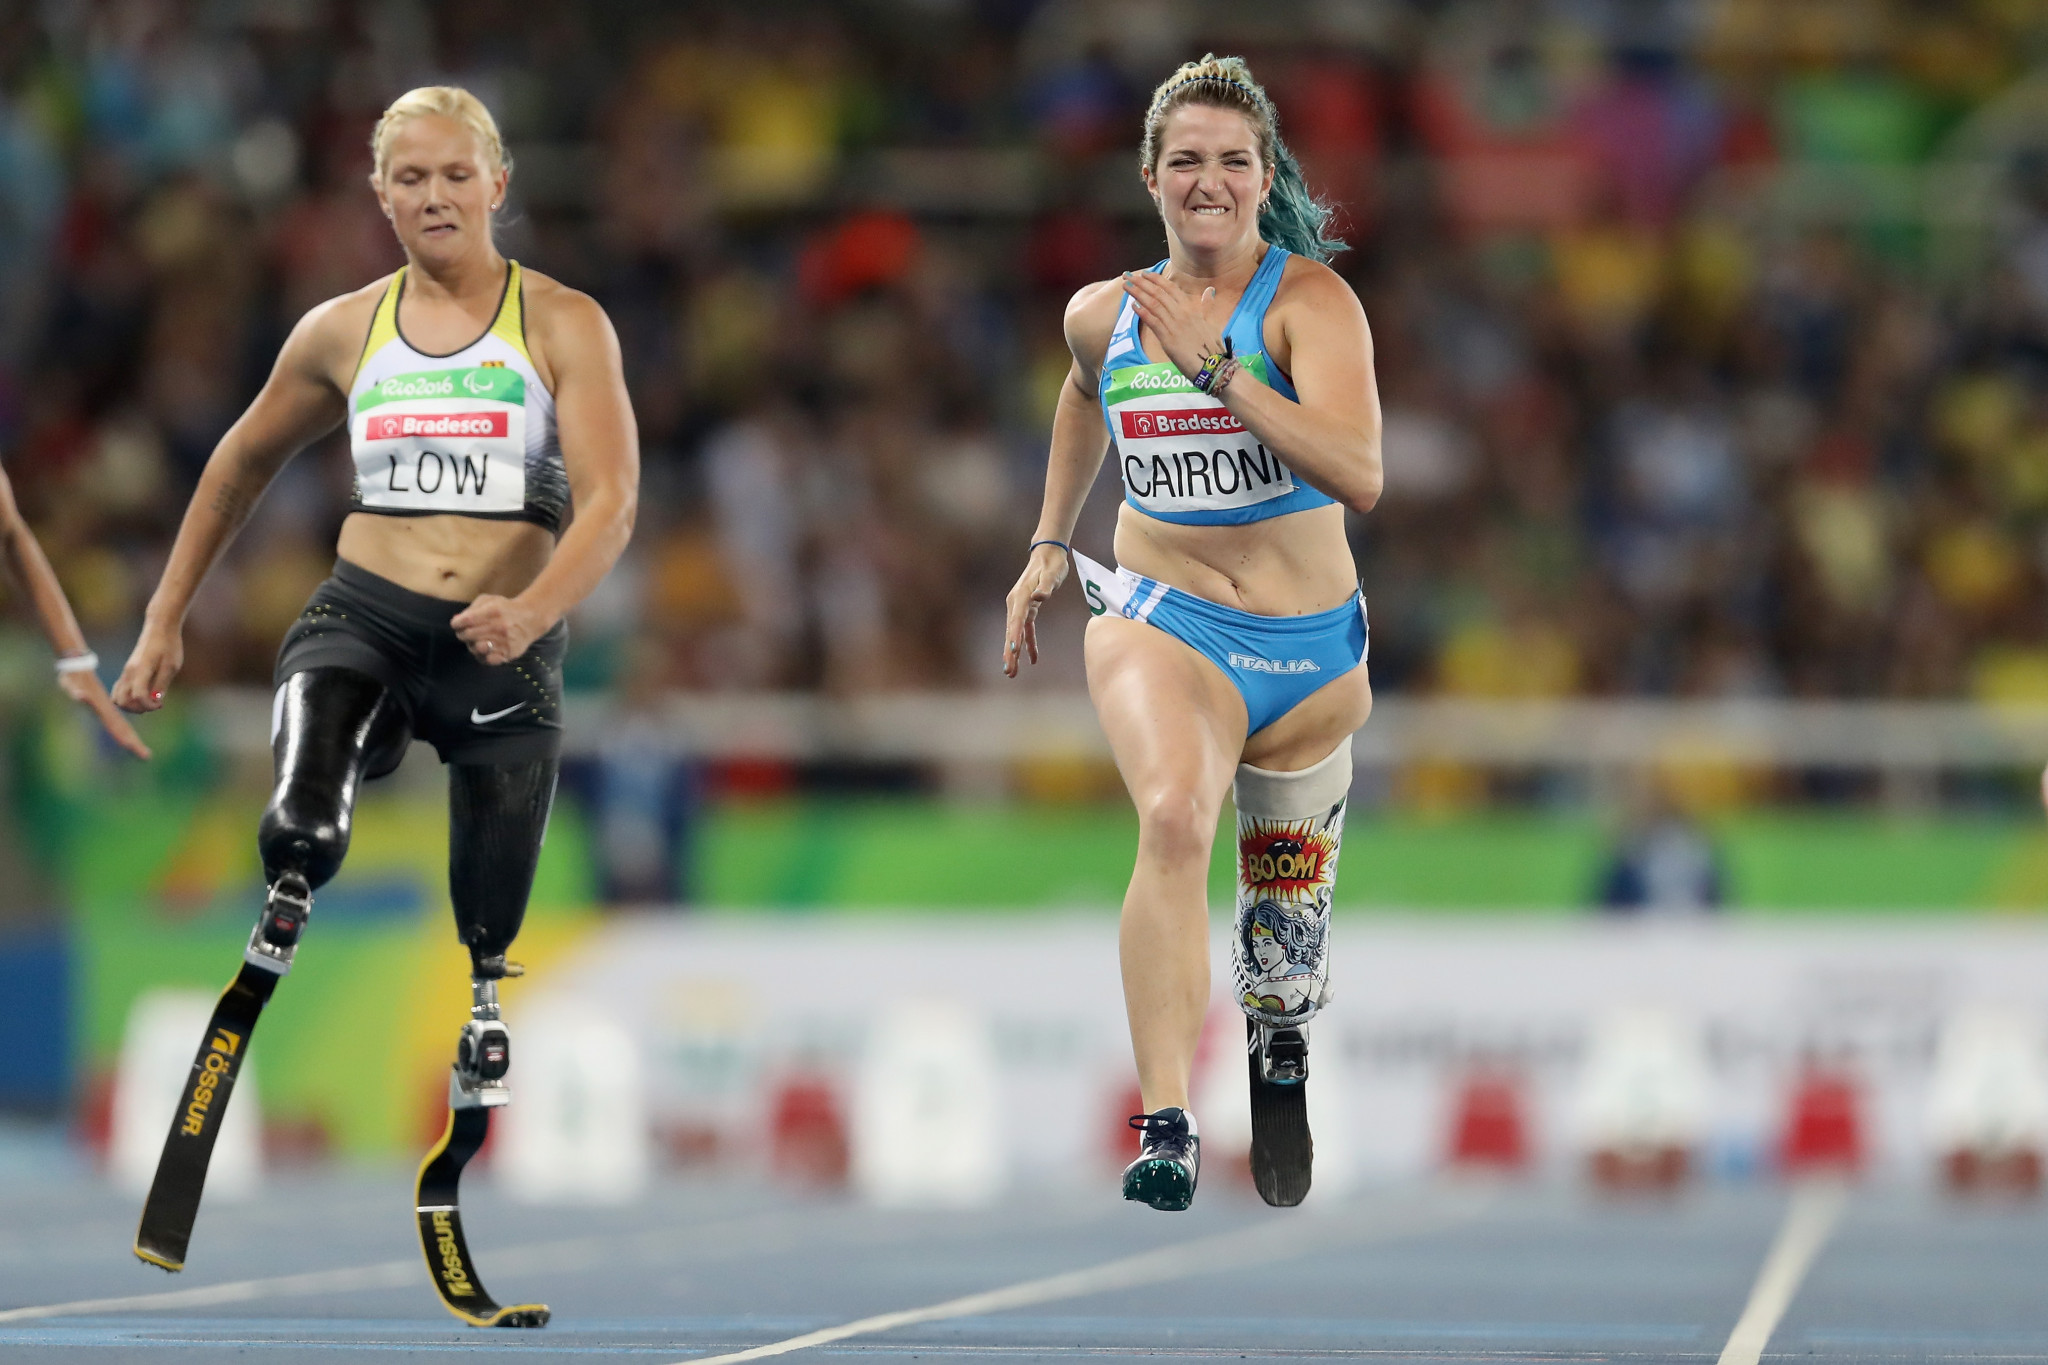 Double Paralympic gold medallists lead Italian team for World Para Athletics Championships